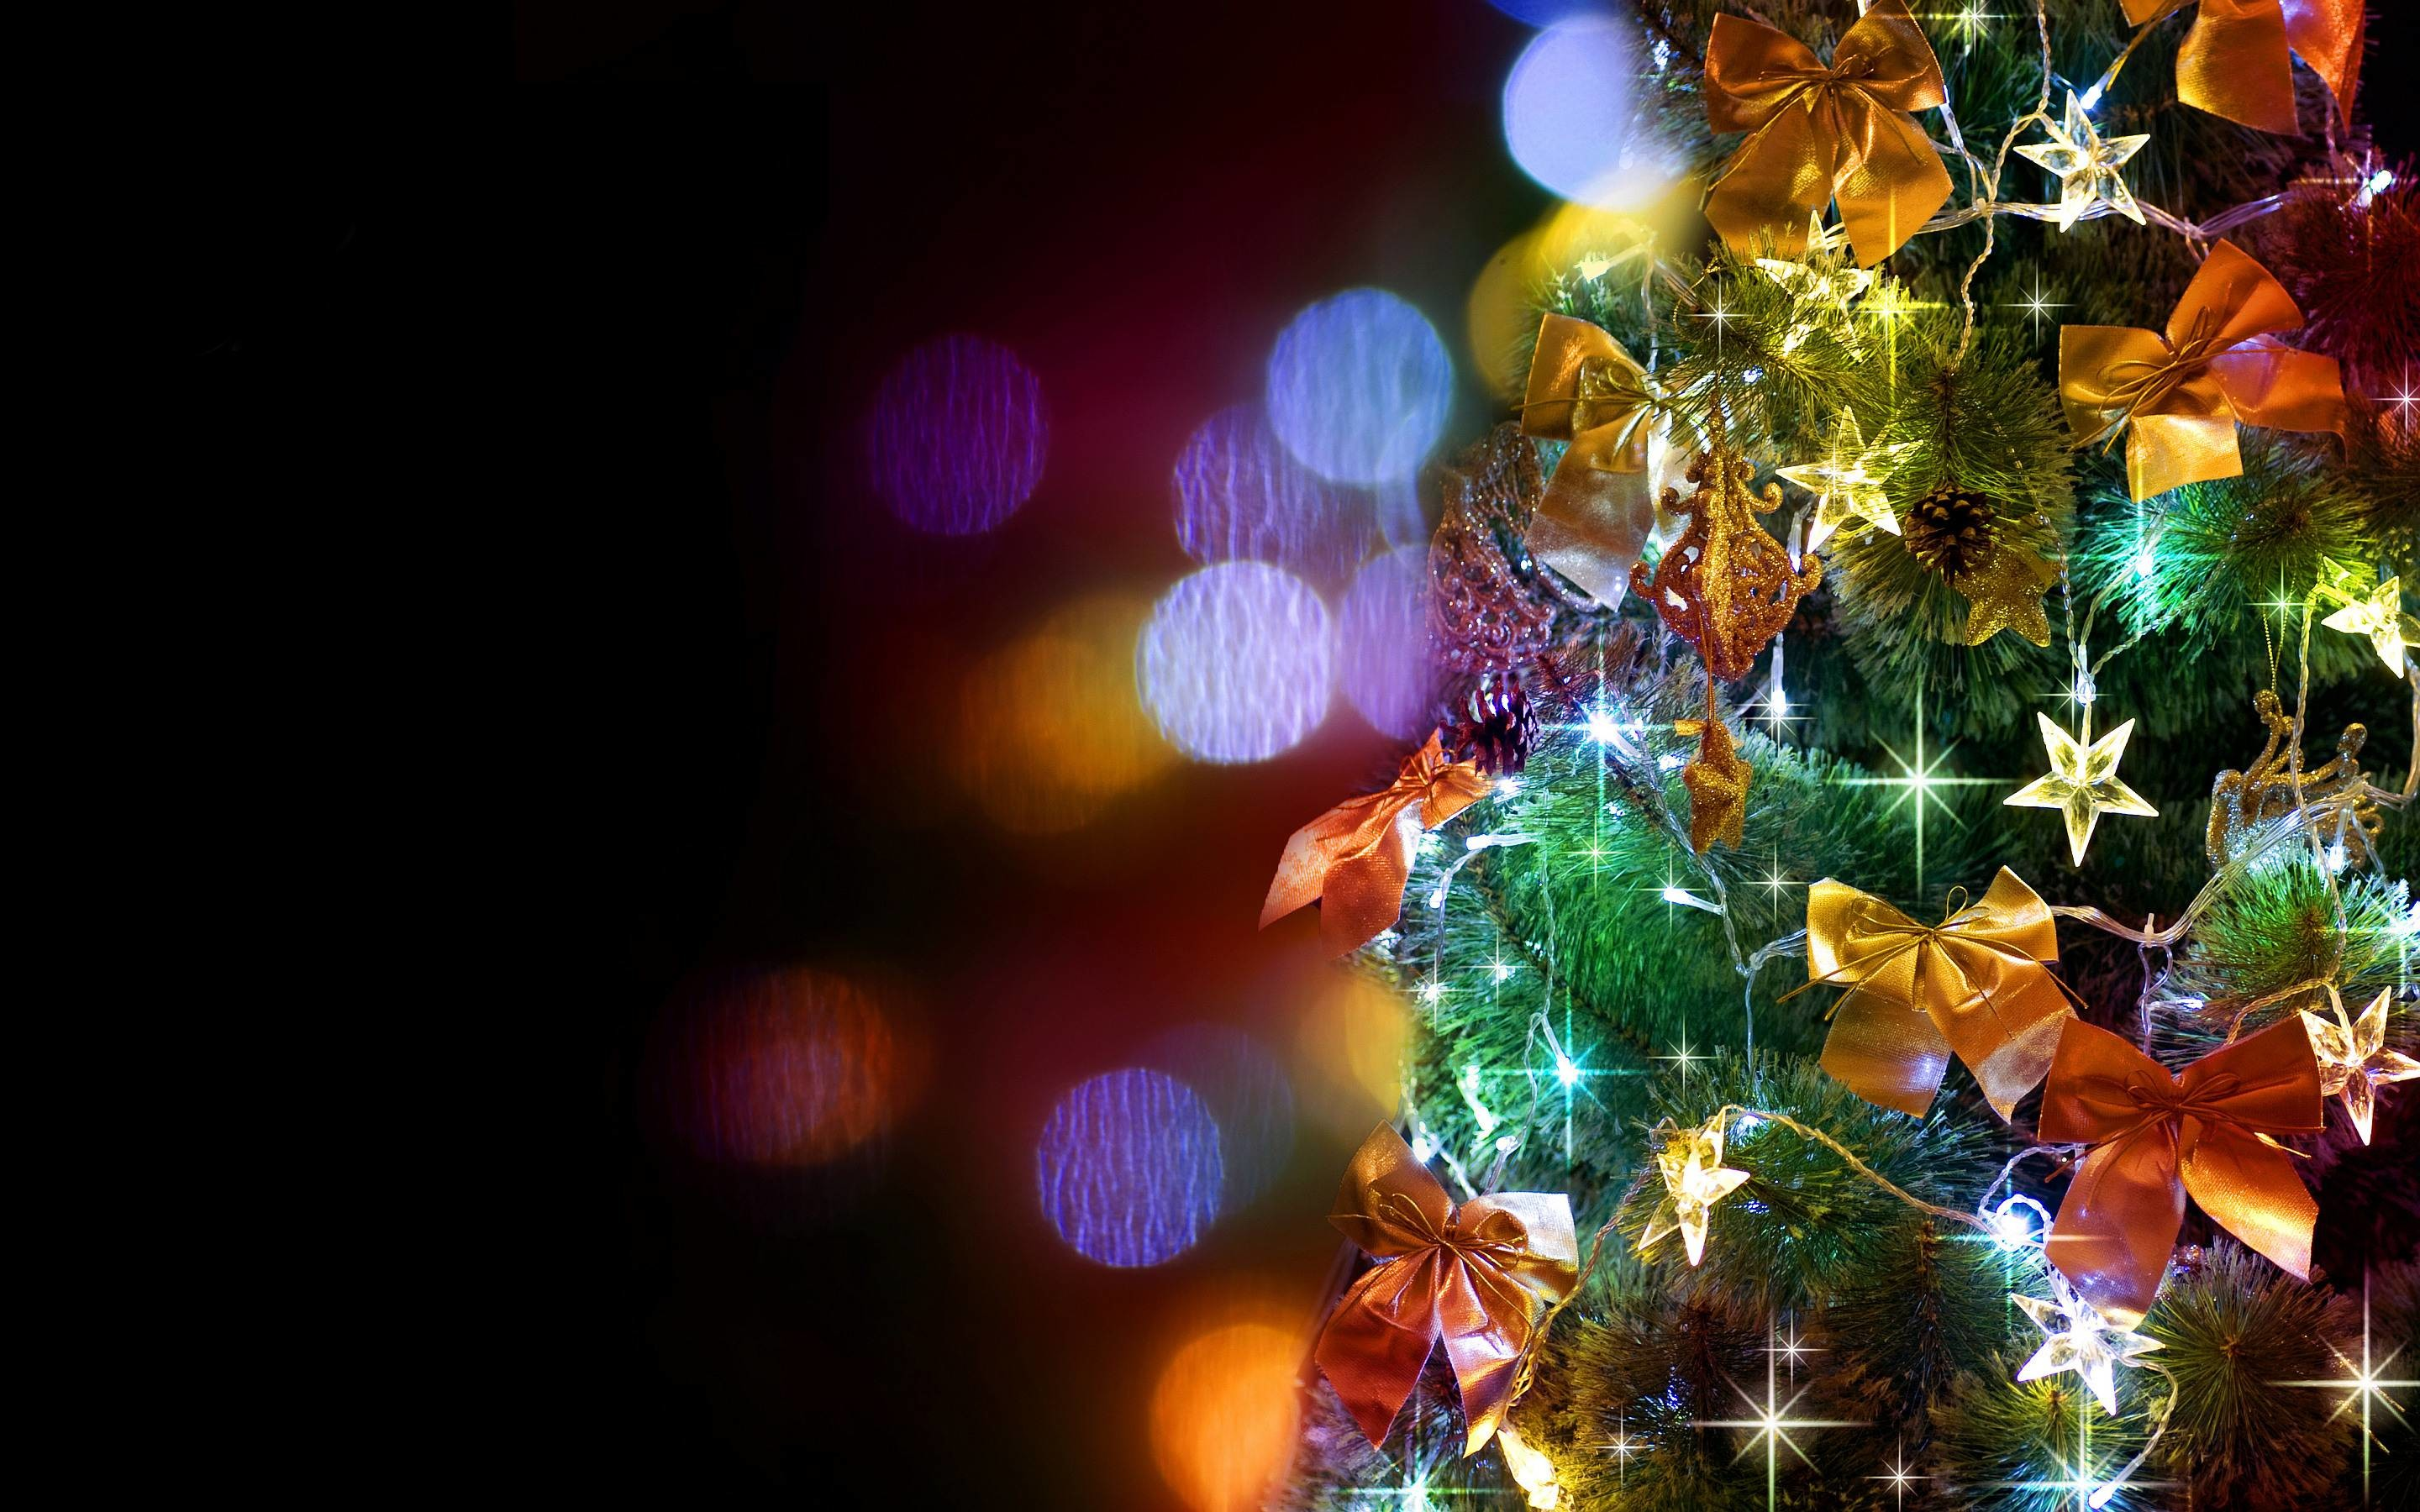 Res: 2880x1800, Animated Christmas Wallpapers - Full HD wallpaper search